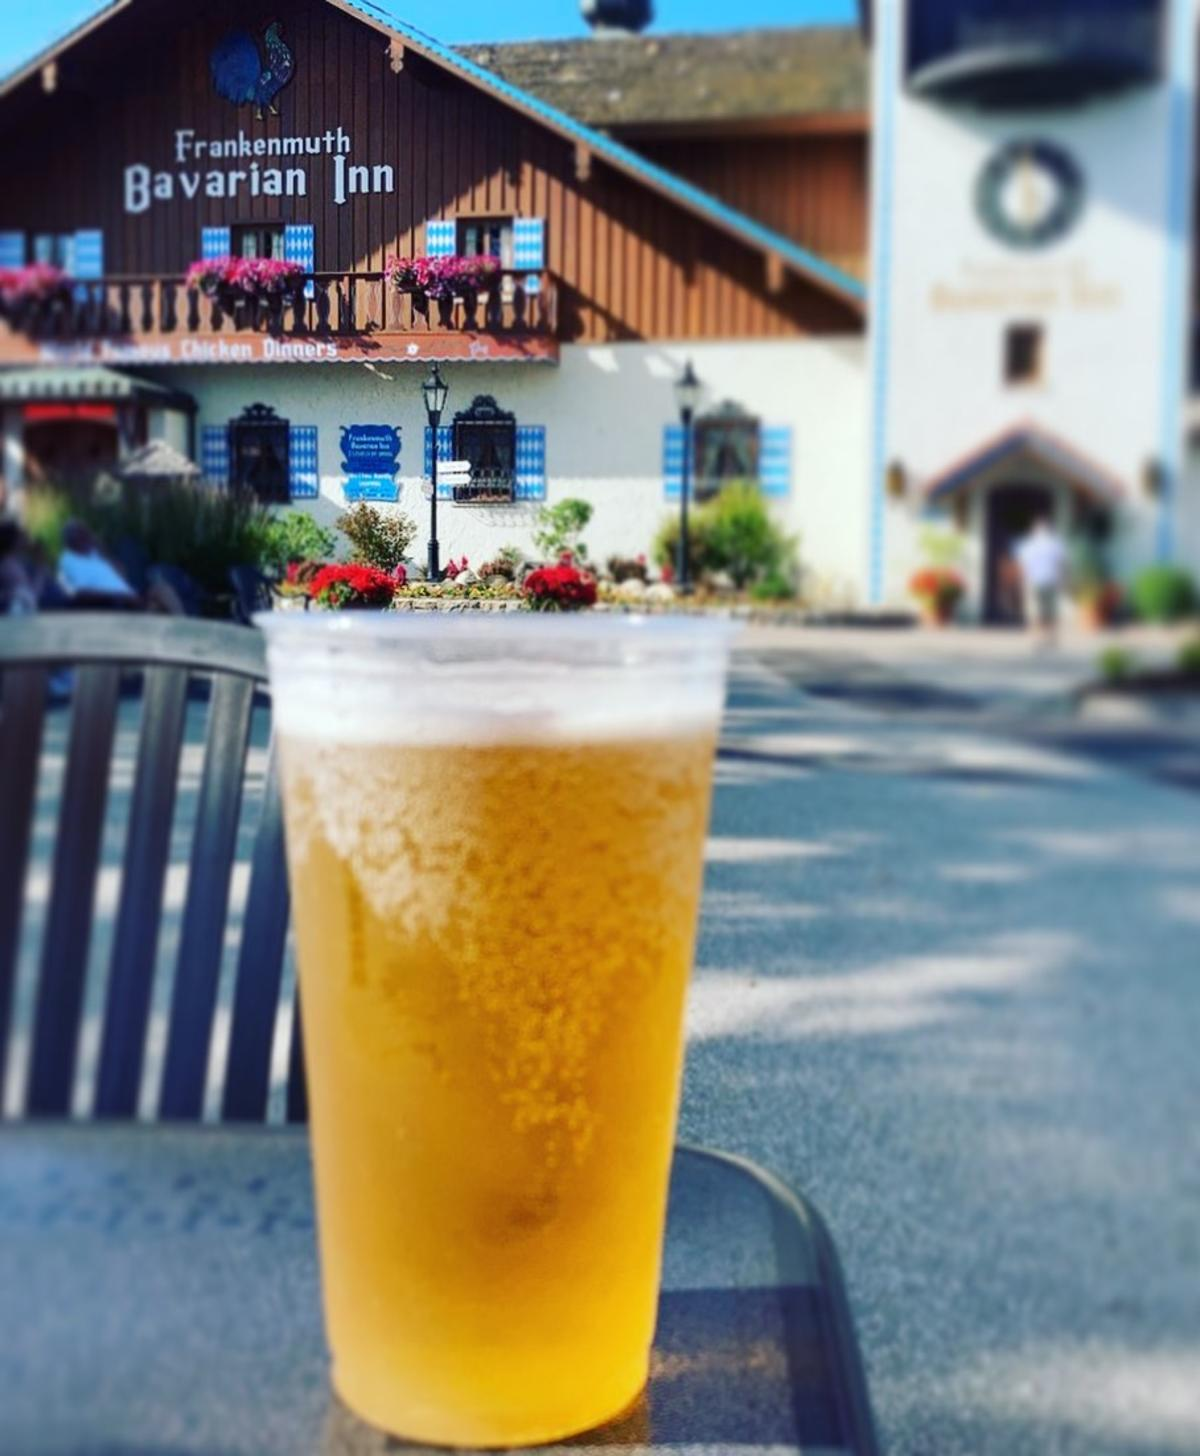 Cold glass of beer on the patio in front of Bavarian Inn Restaurant in Frankenmuth